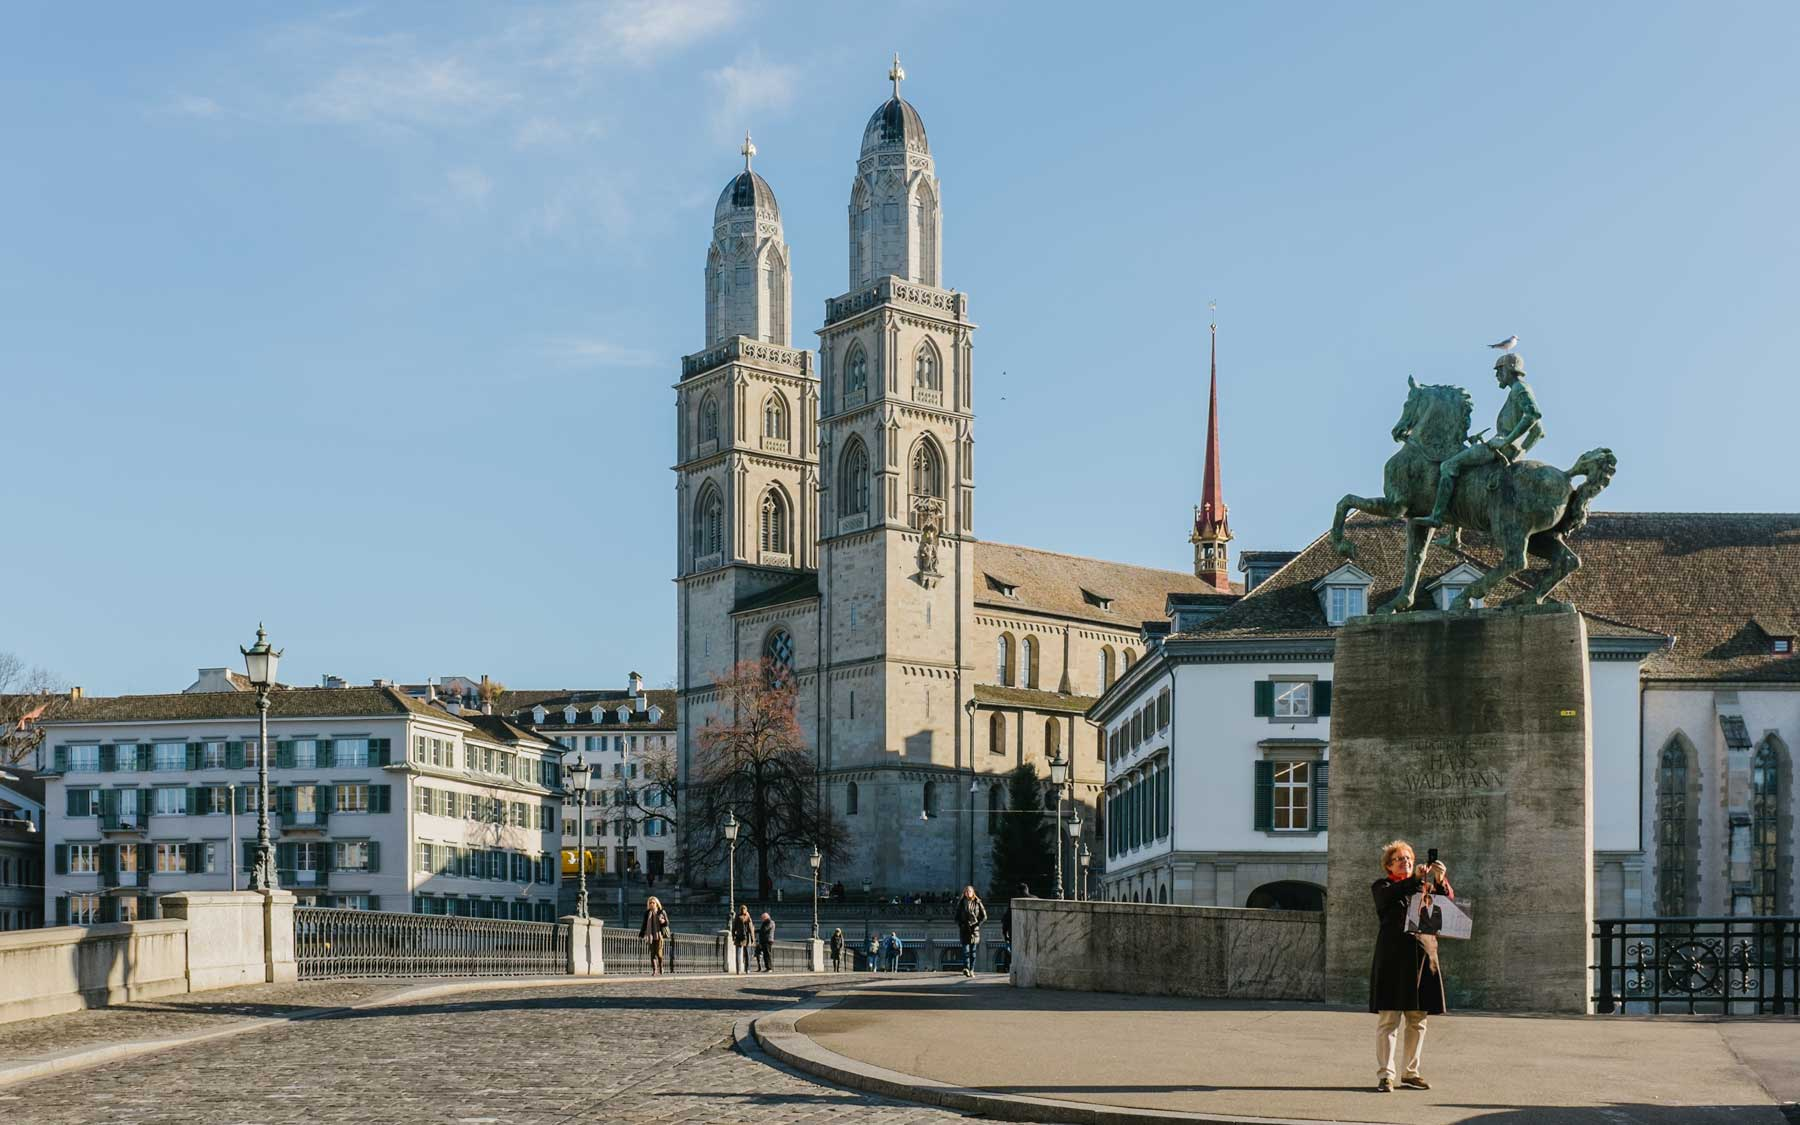 A woman frames her selfie with Zurich's Grossmünster in the background.